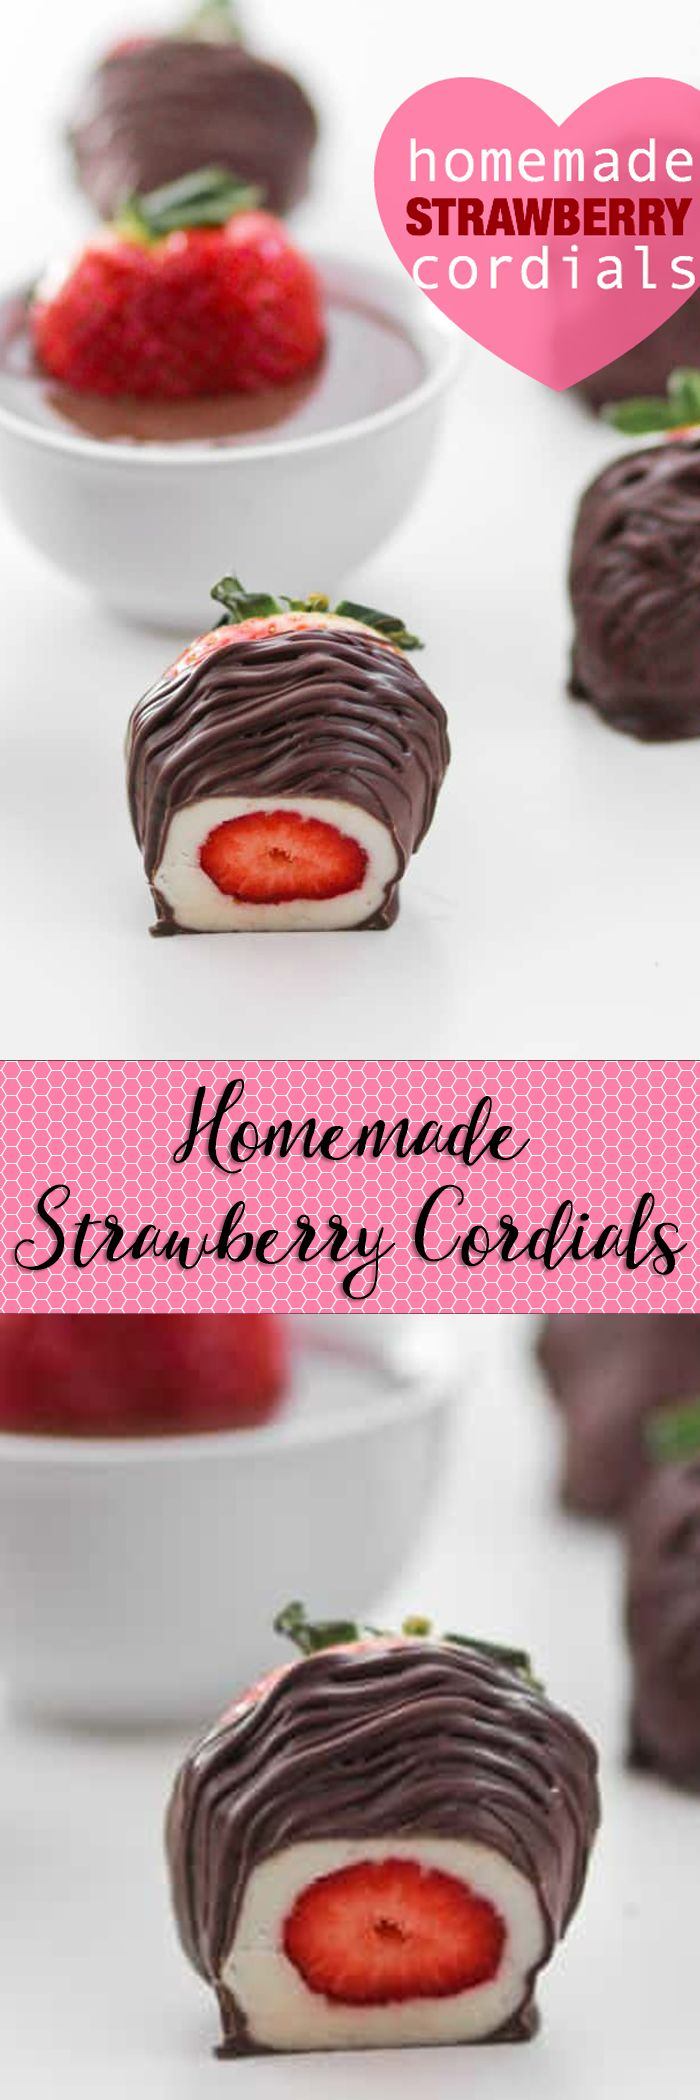 Homemade Strawberry Cordials -- the perfect way to use those gorgeous in-season strawberries!